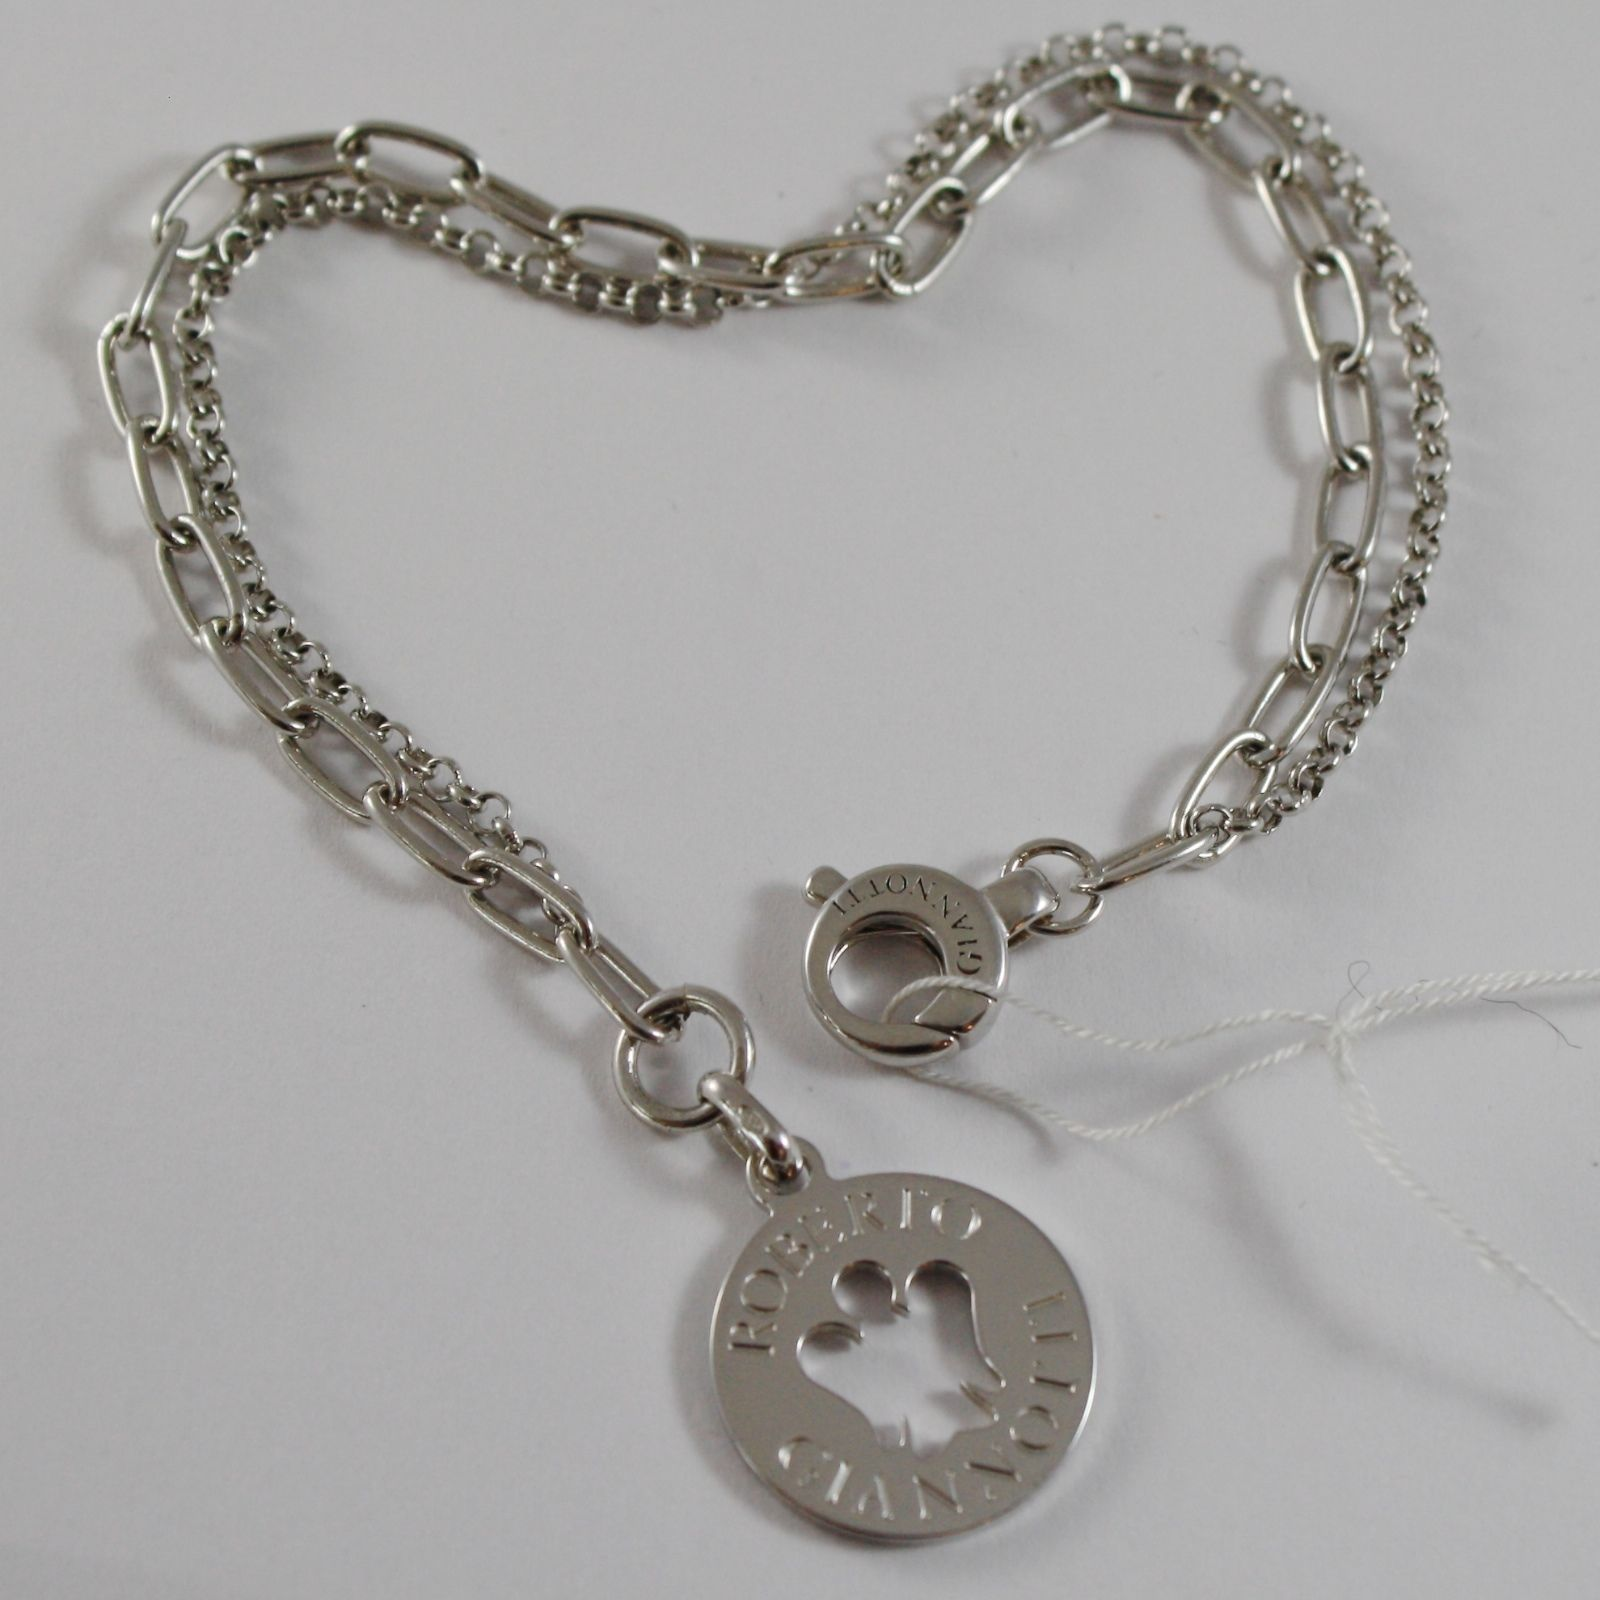 ROBERTO GIANNOTTI 925 SILVER BRACELET ANGEL DISC DOUBLE CHAIN MADE IN ITALY